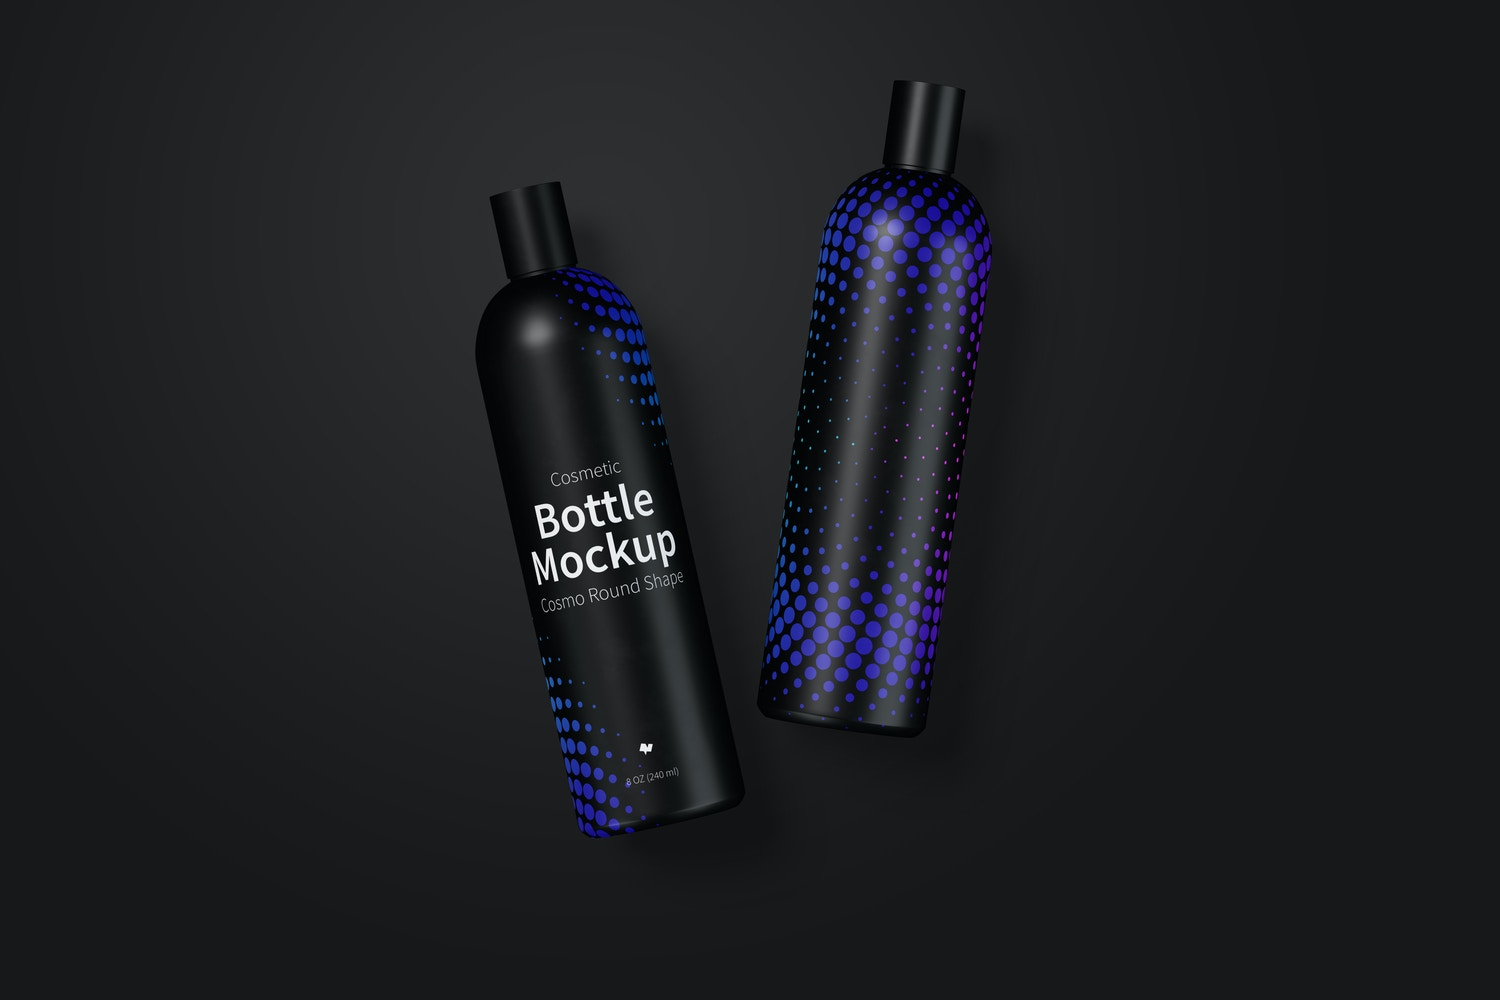 8 oz / 240 ml Cosmo Round Shape Cosmetic Bottles Mockup with Disc Cap in Front View